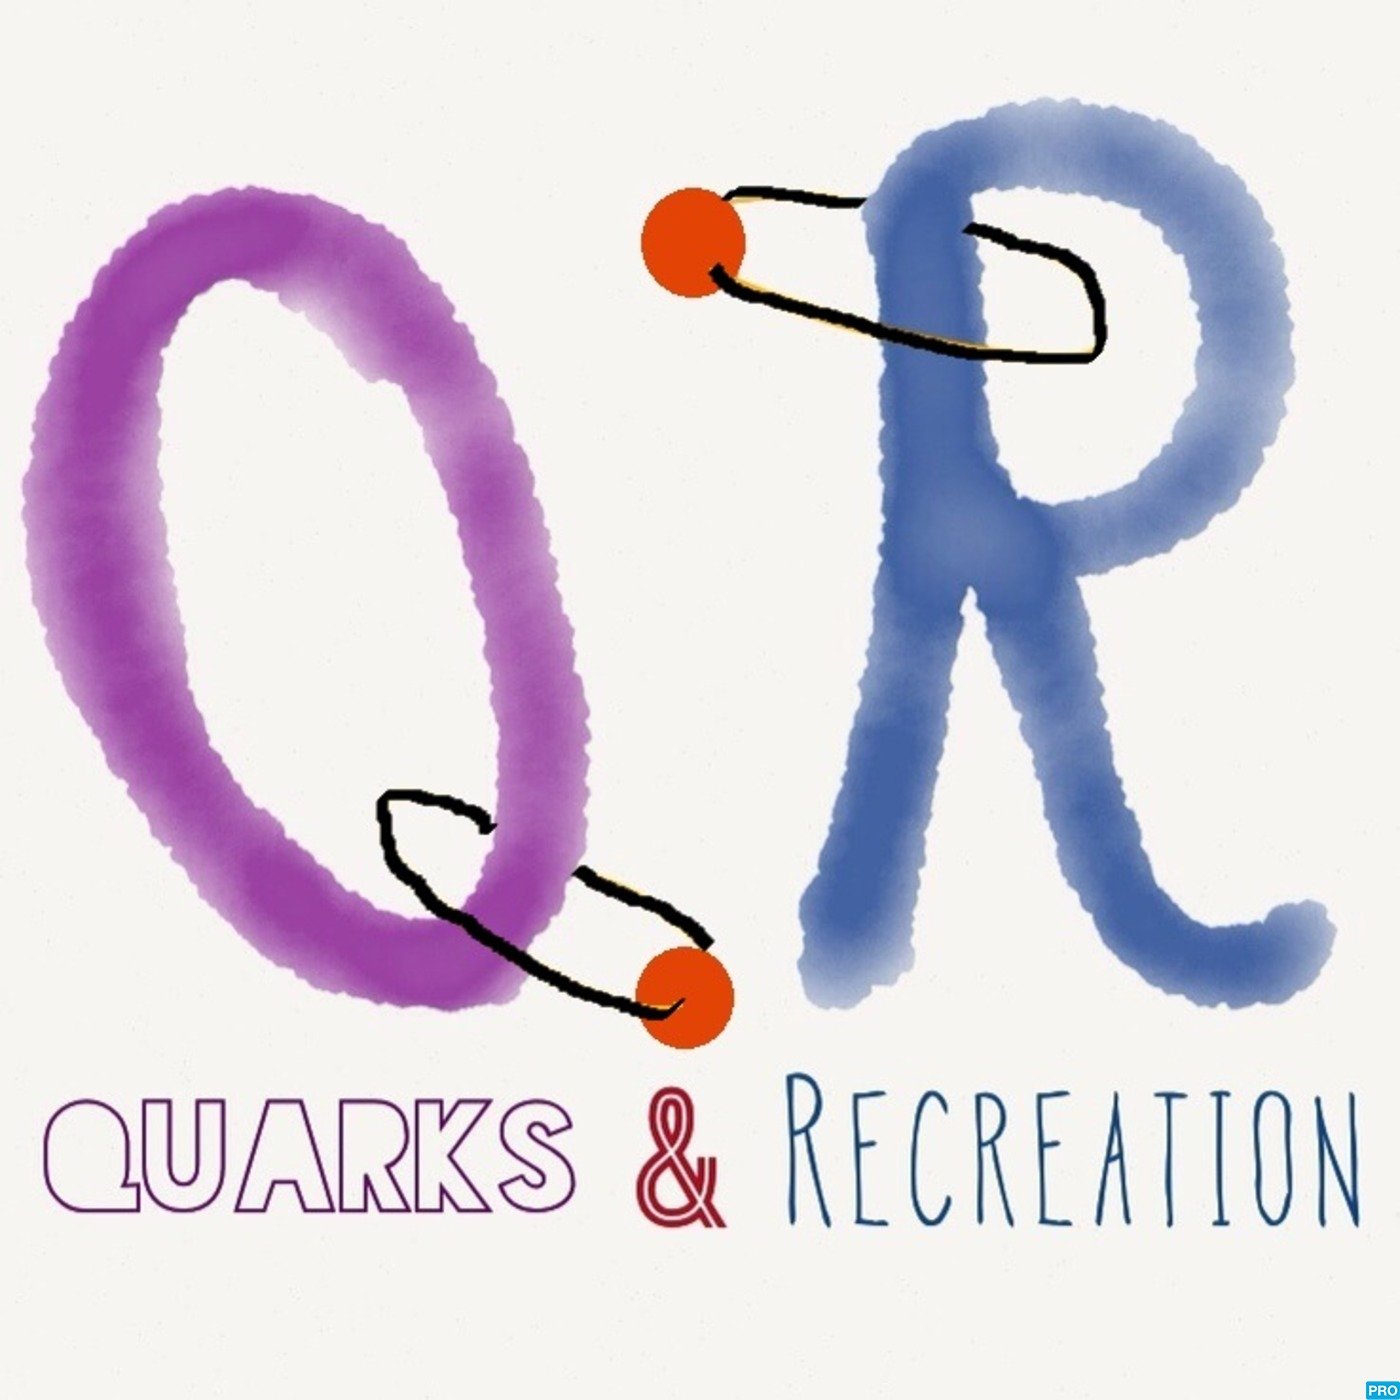 Quarks & Recreation